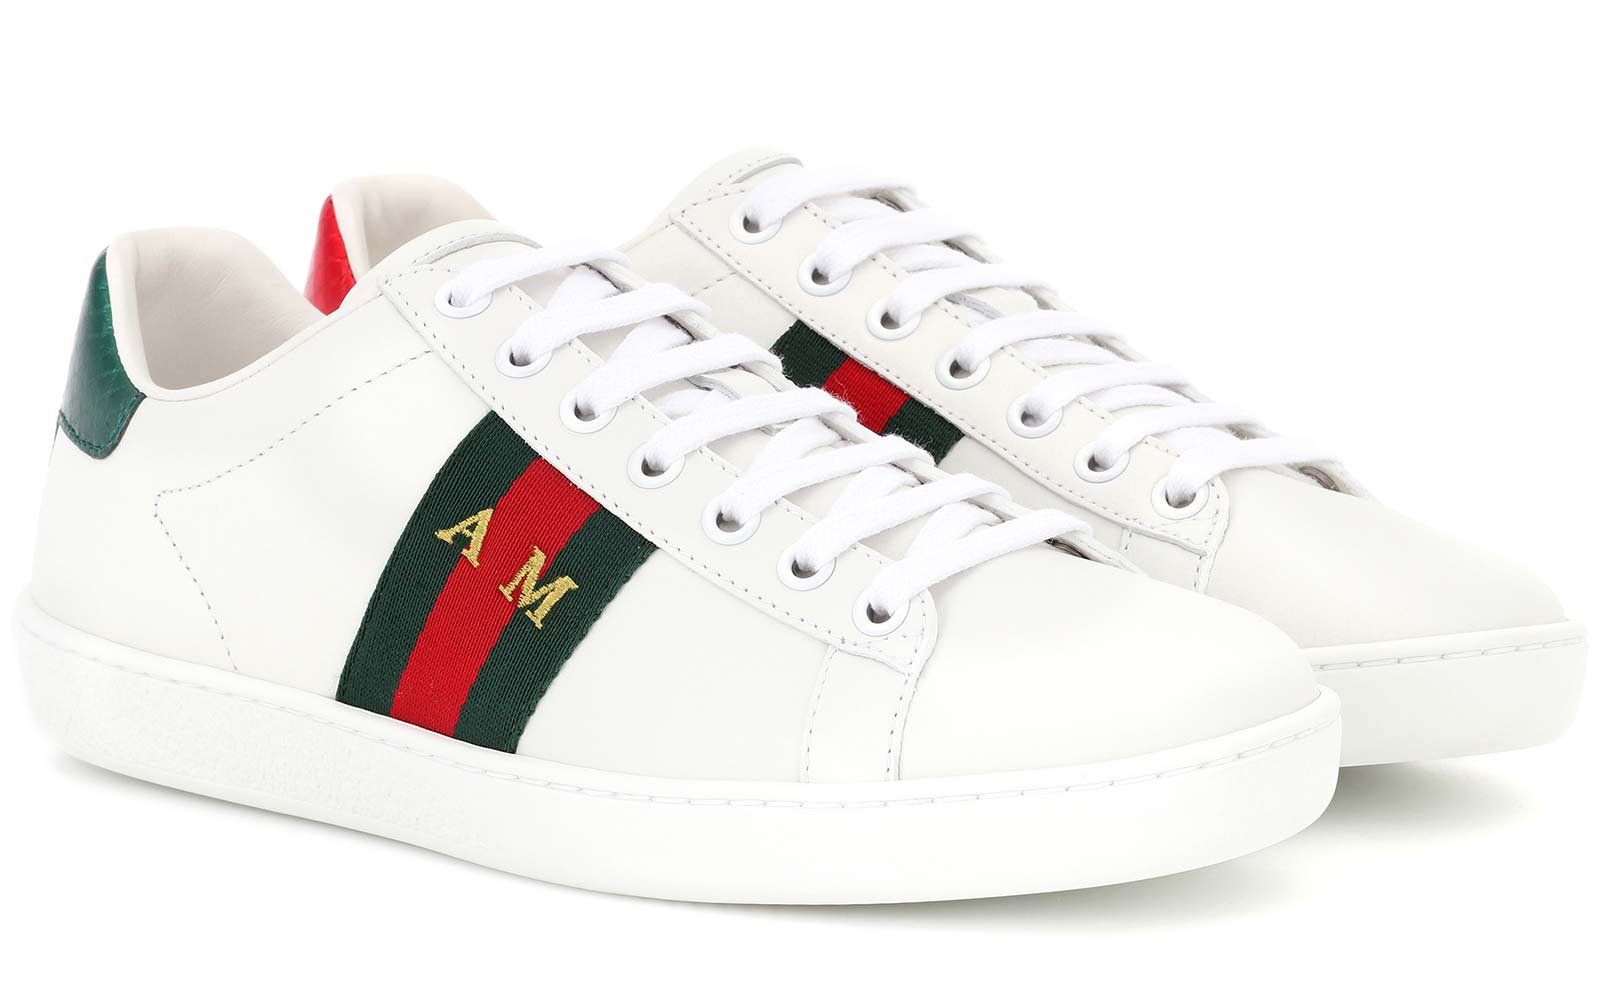 diy custom initial gucci sneaker shoes mytheresa.com